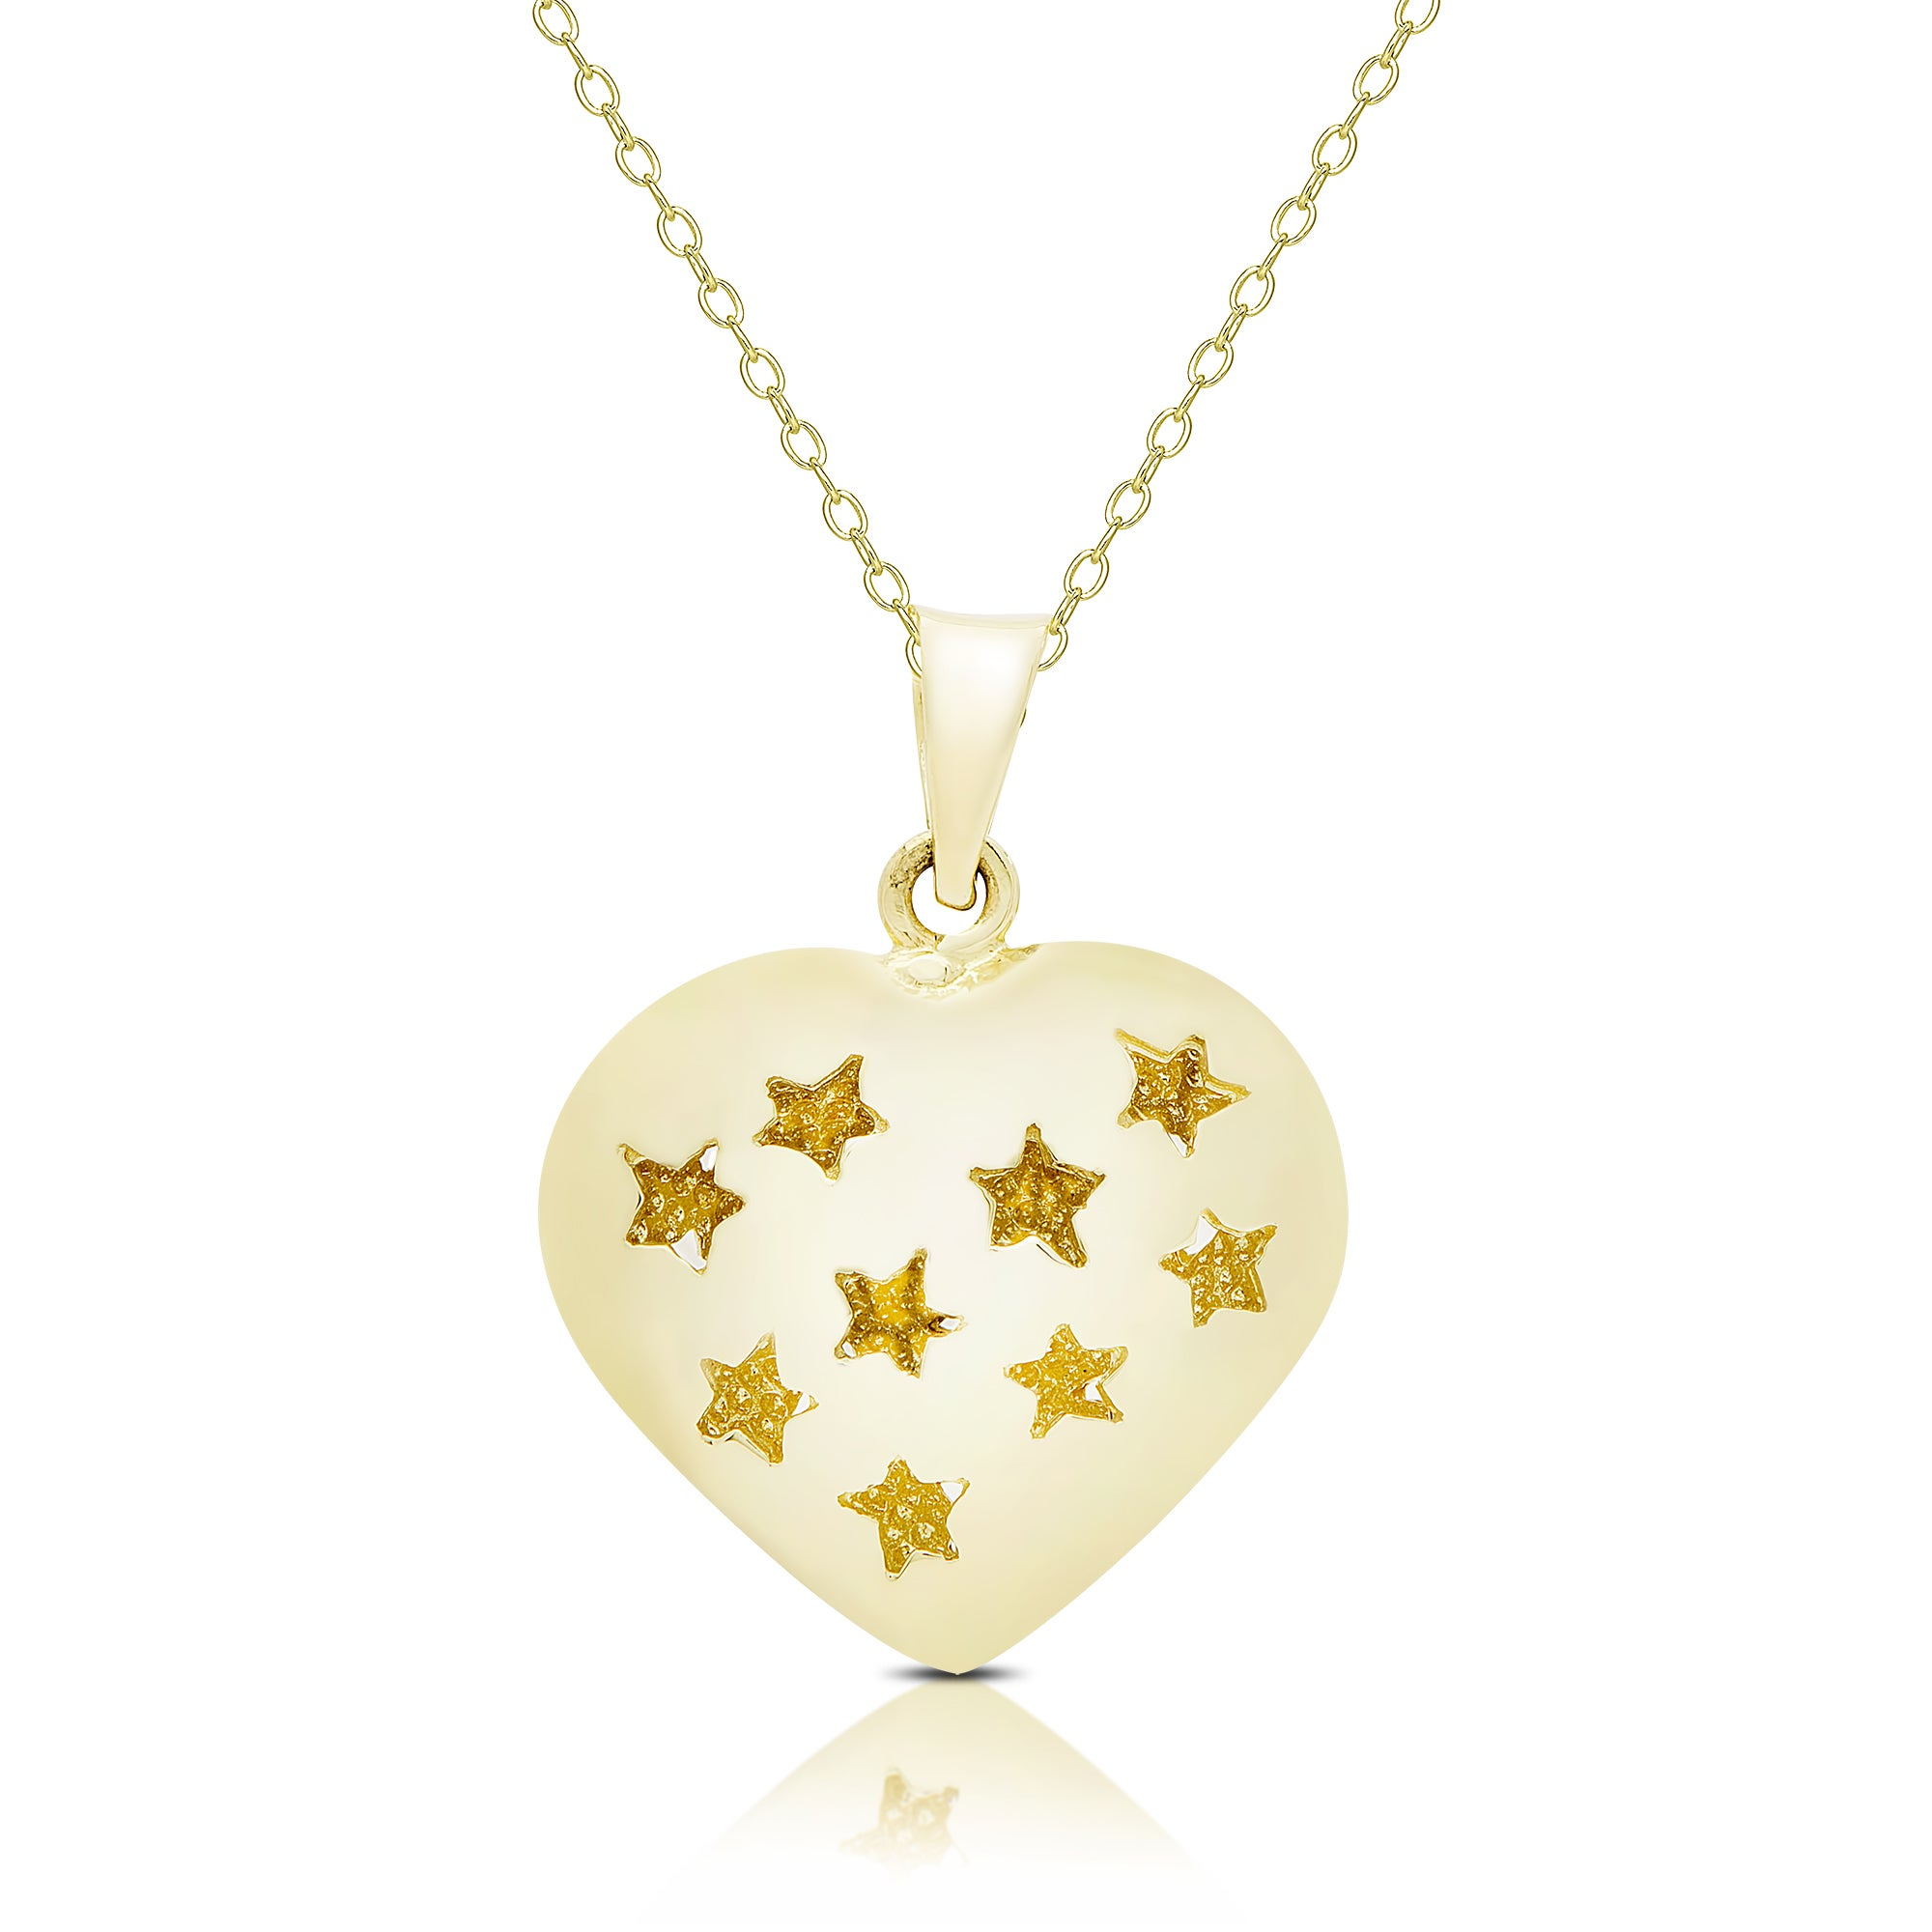 589e7cce9daf Shop Dolce Giavonna 14K Gold Heart Necklace - On Sale - Free ...